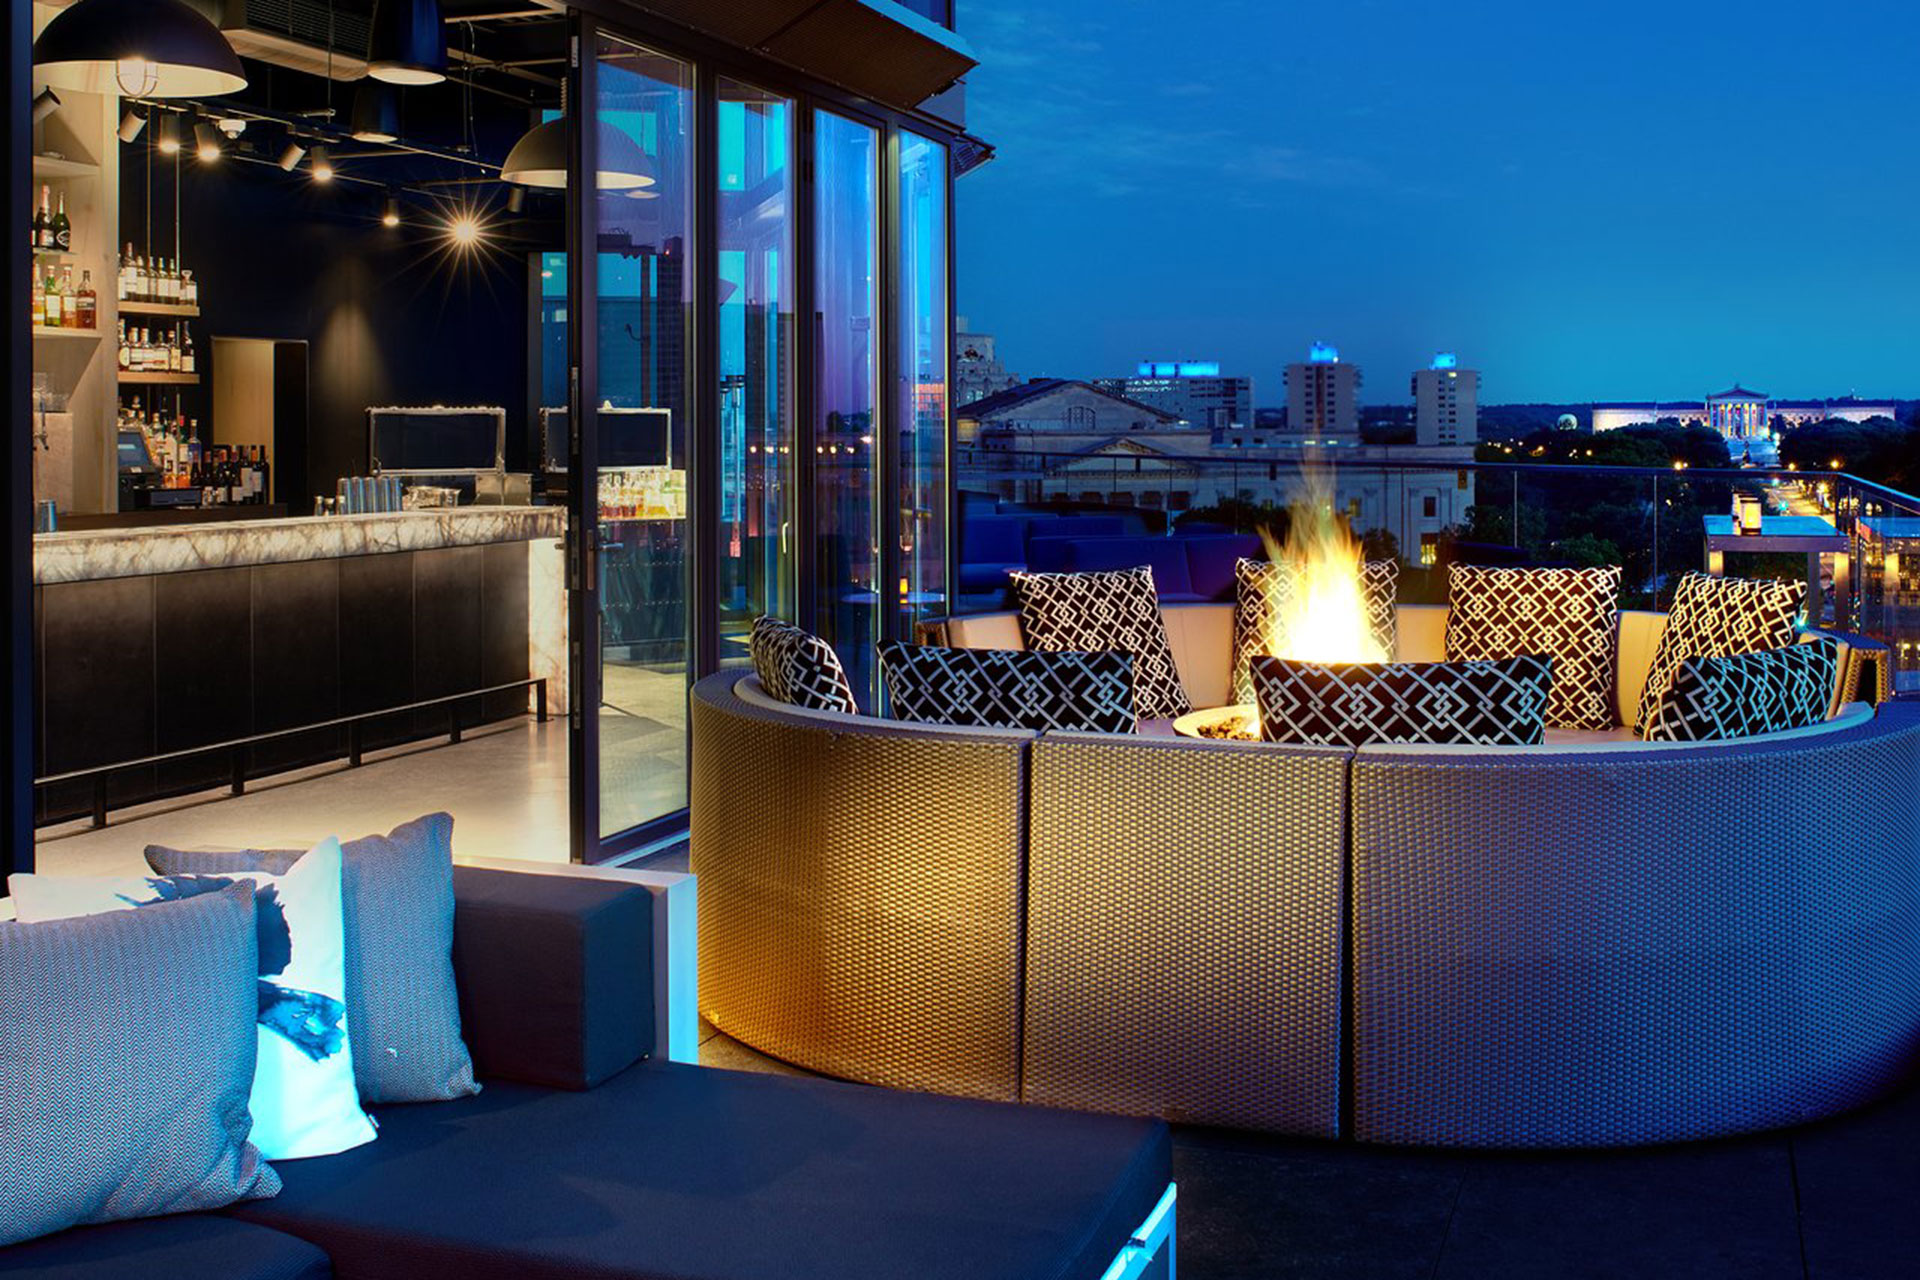 Rooftop Fire Pit at The Logan; Courtesy of The Logan